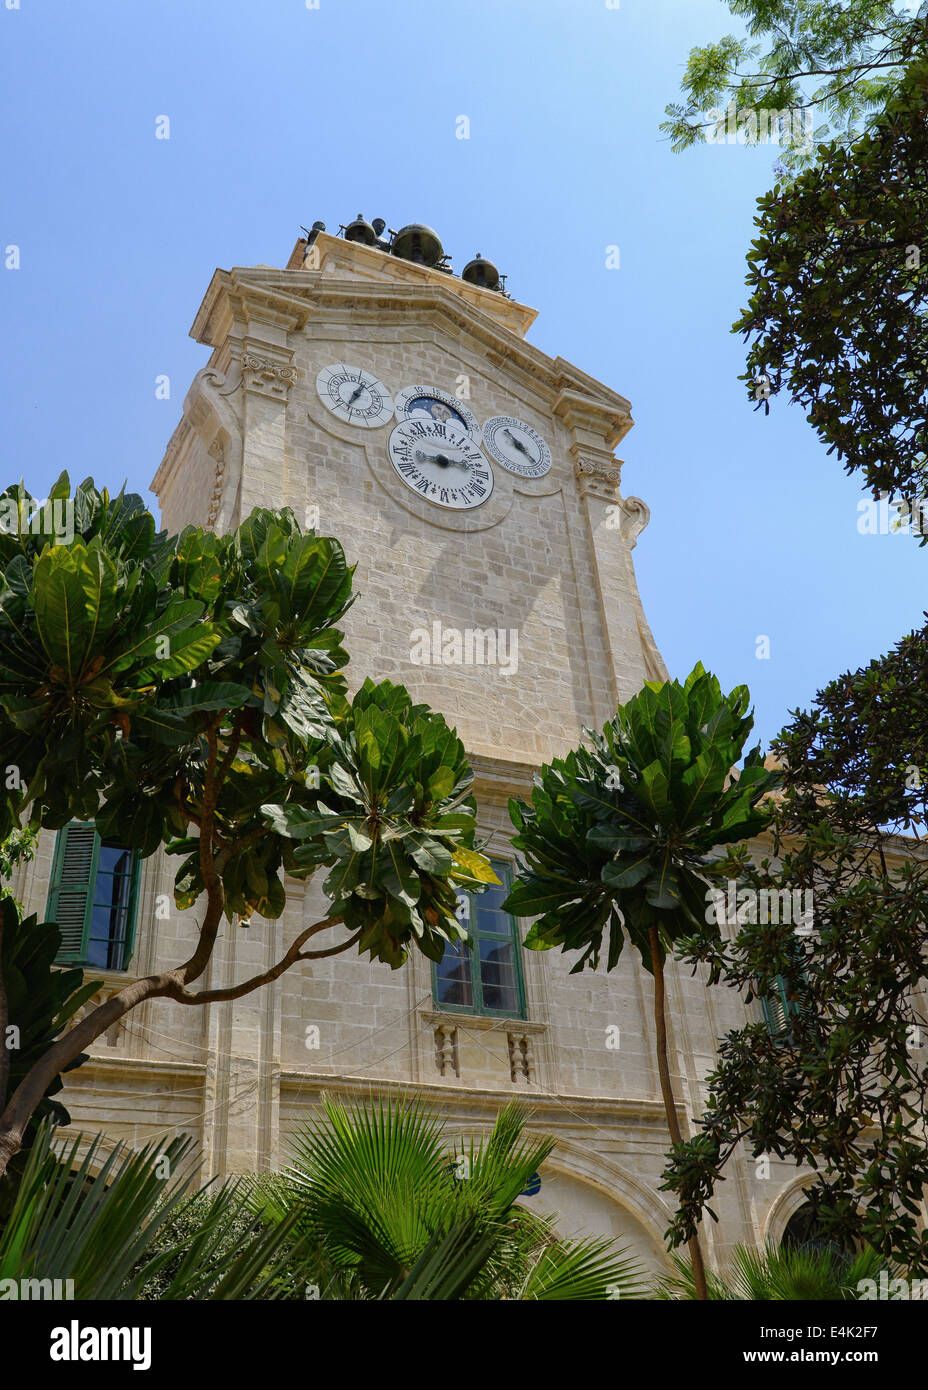 Clock Tower next to Grand Armoury Palace in Valletta, Malta - Stock Image